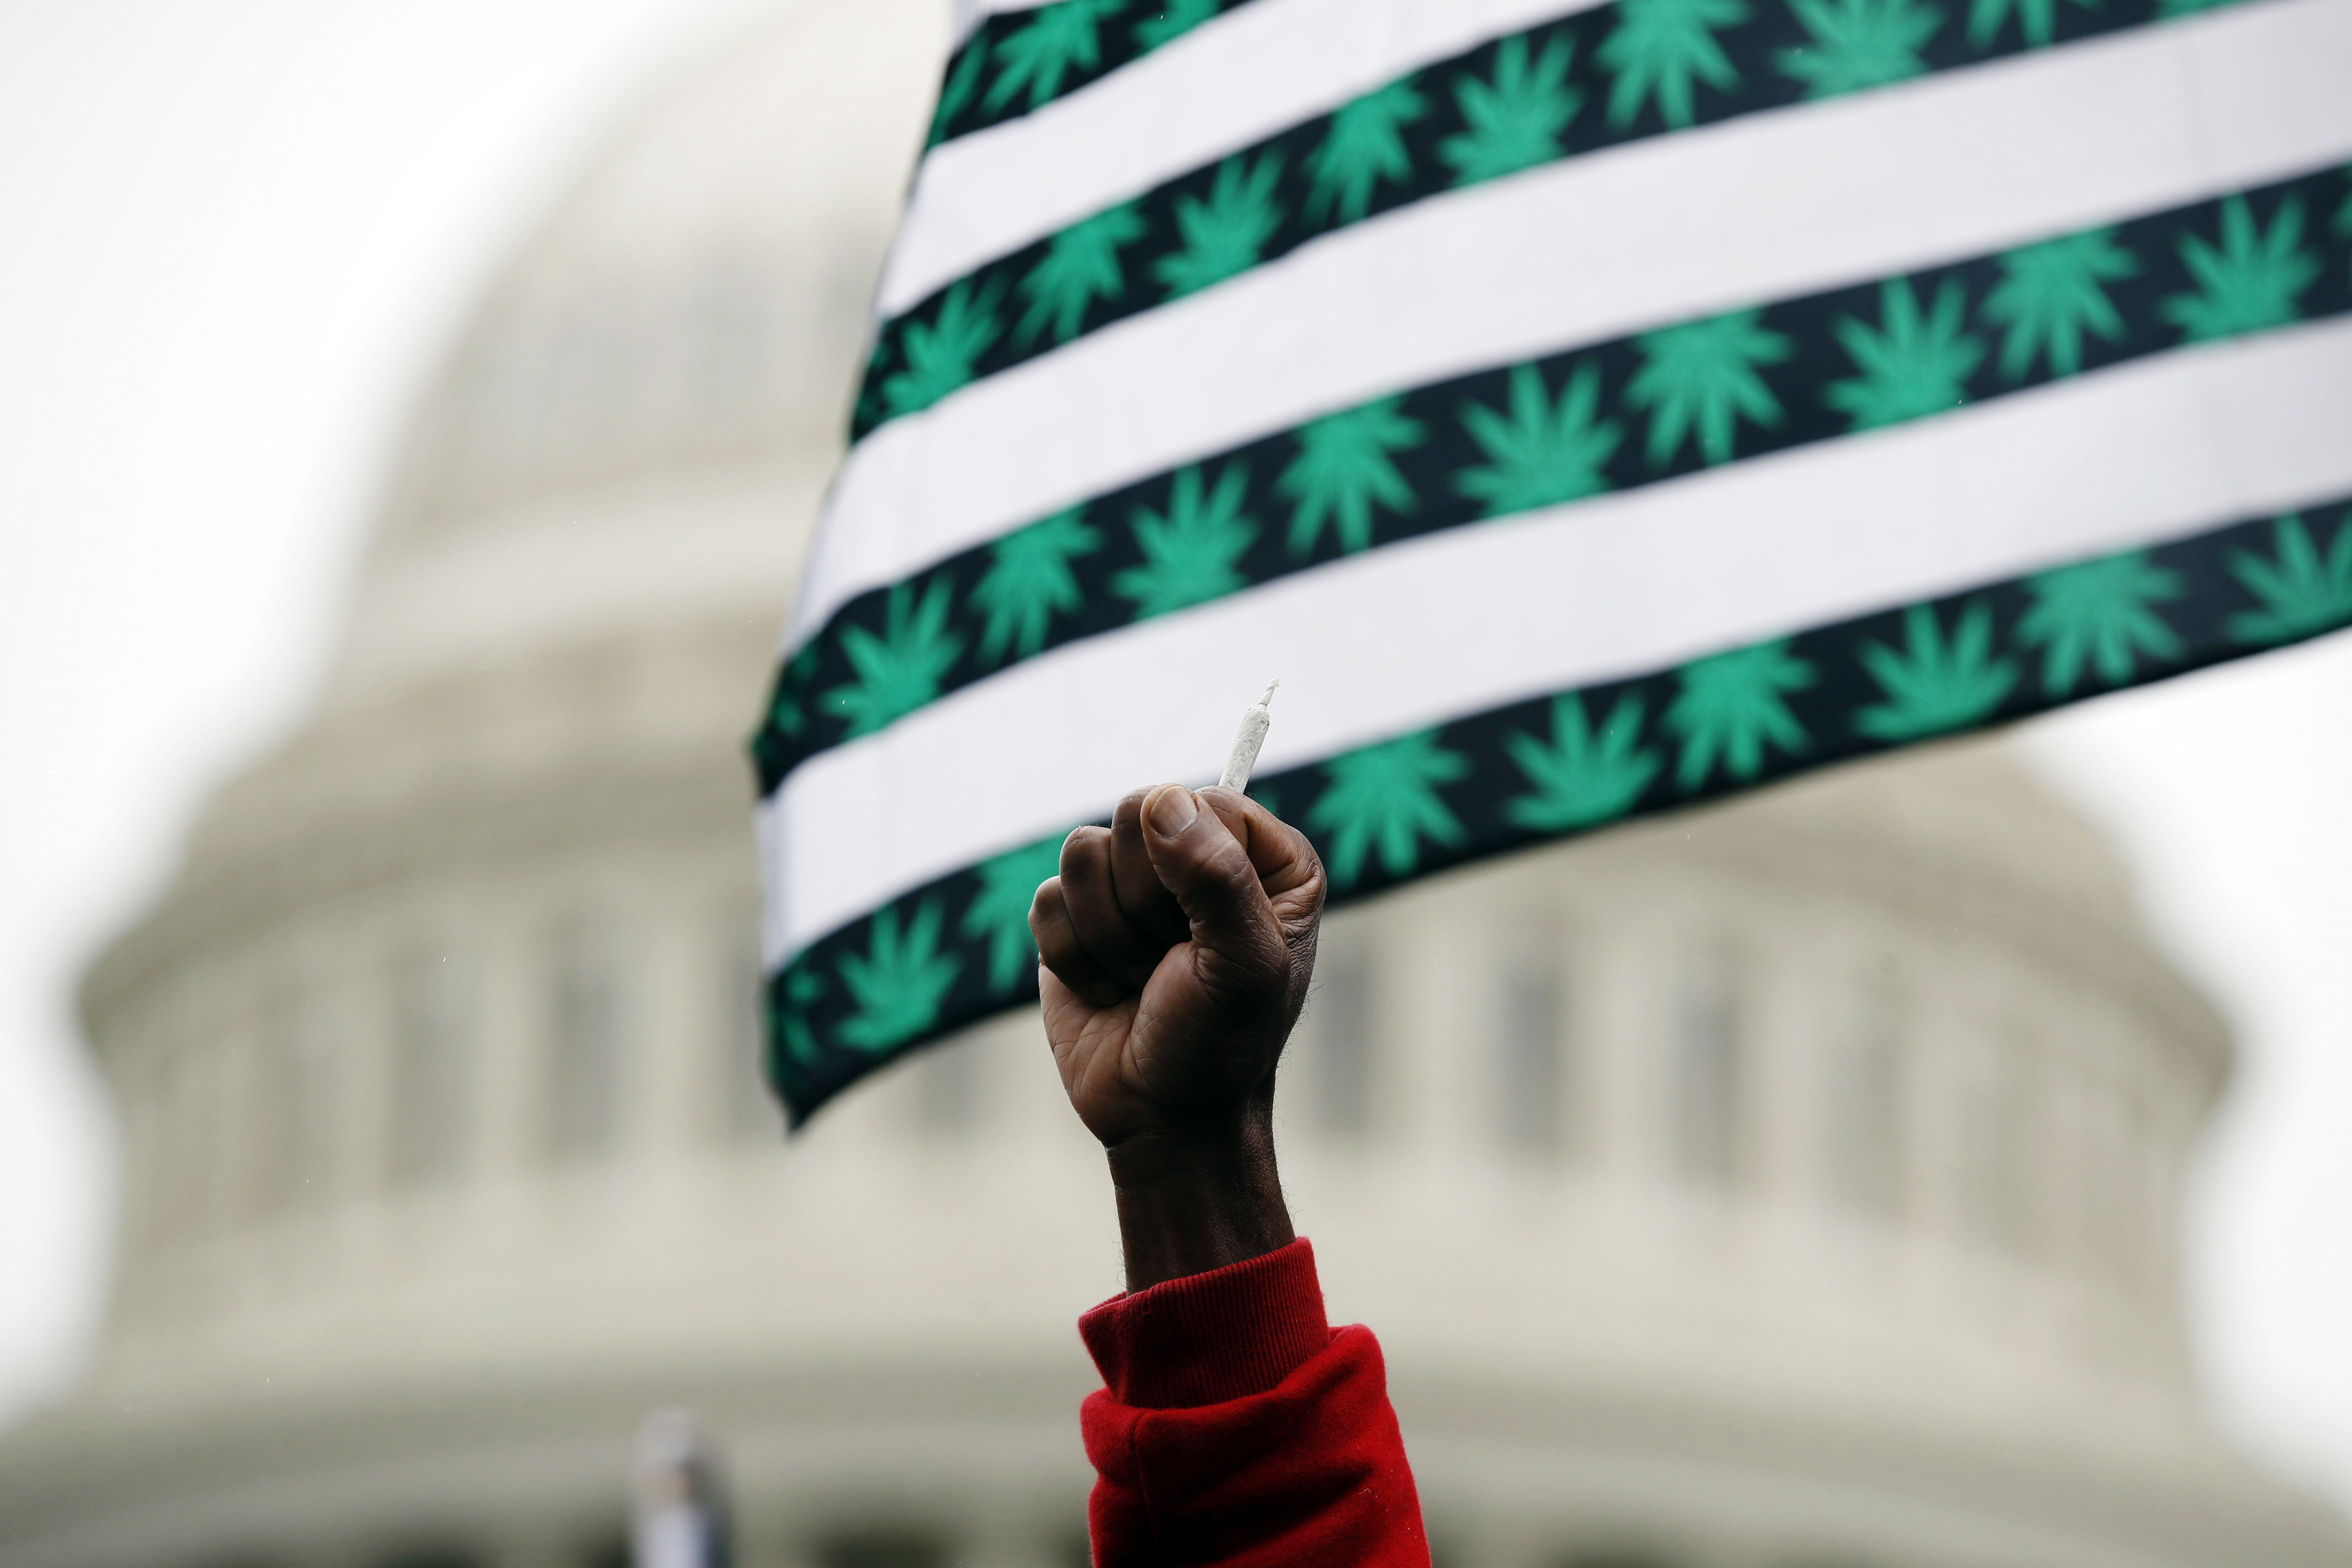 Pot for All: How Congress Is Trying to Make Weed Legal